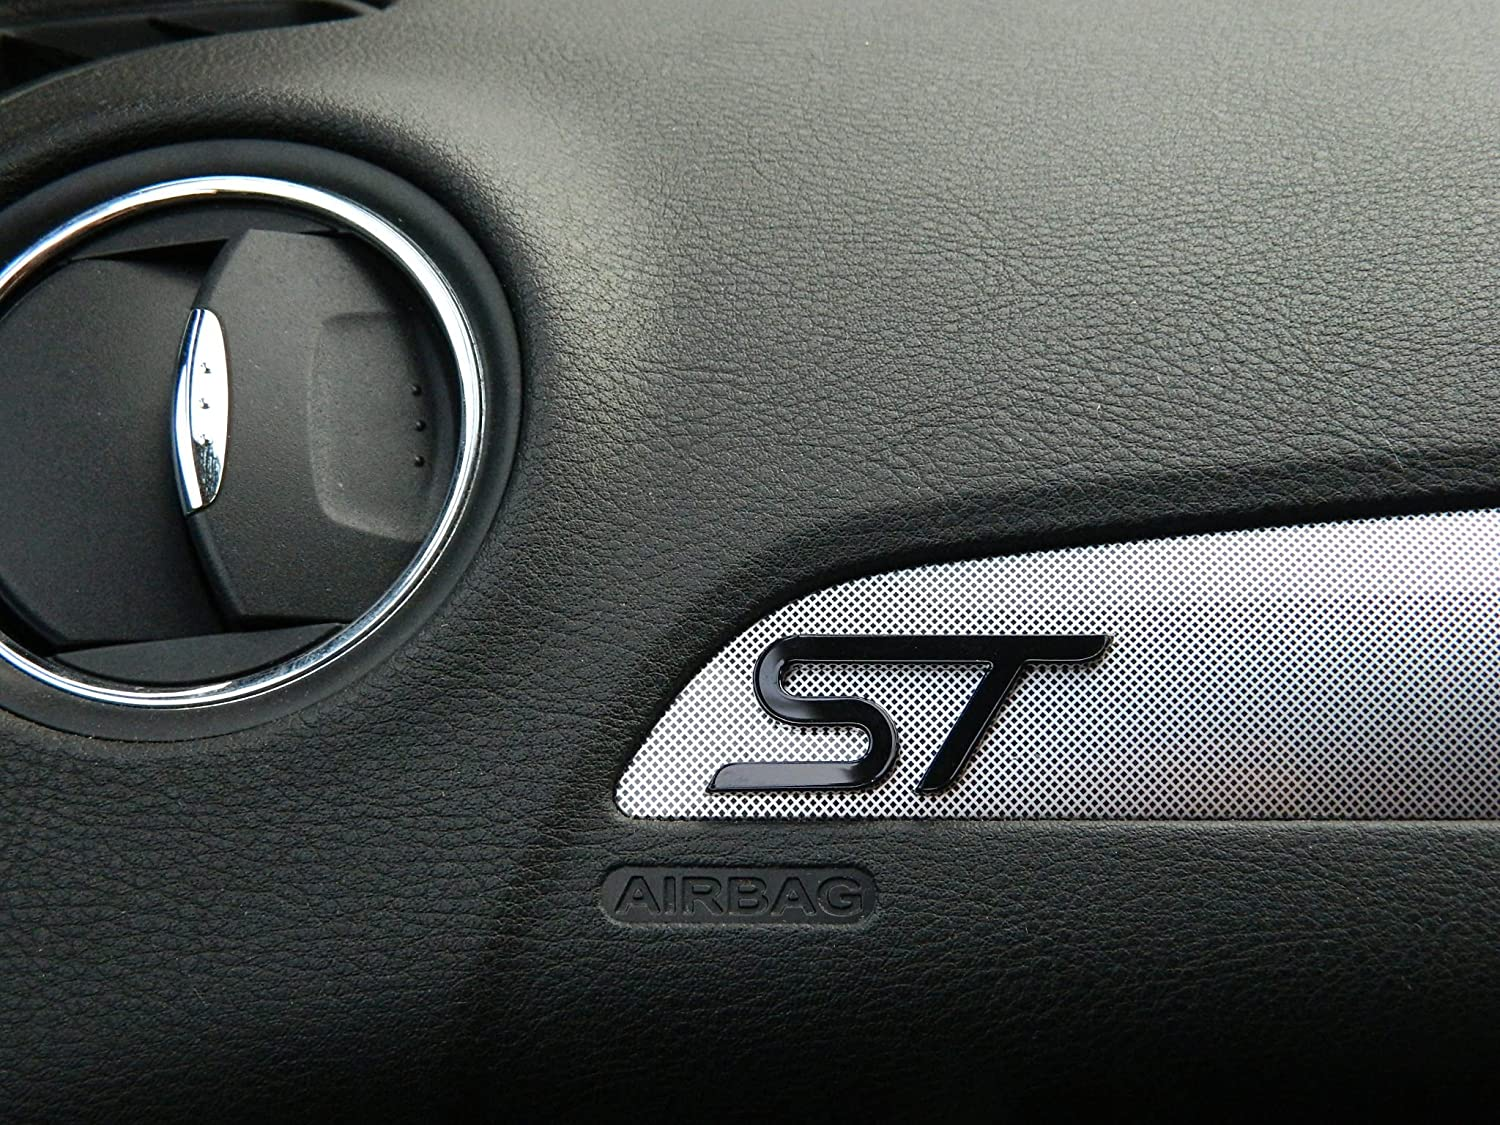 ST EMBLEM INSIDE CAR BADGE EMBLEM